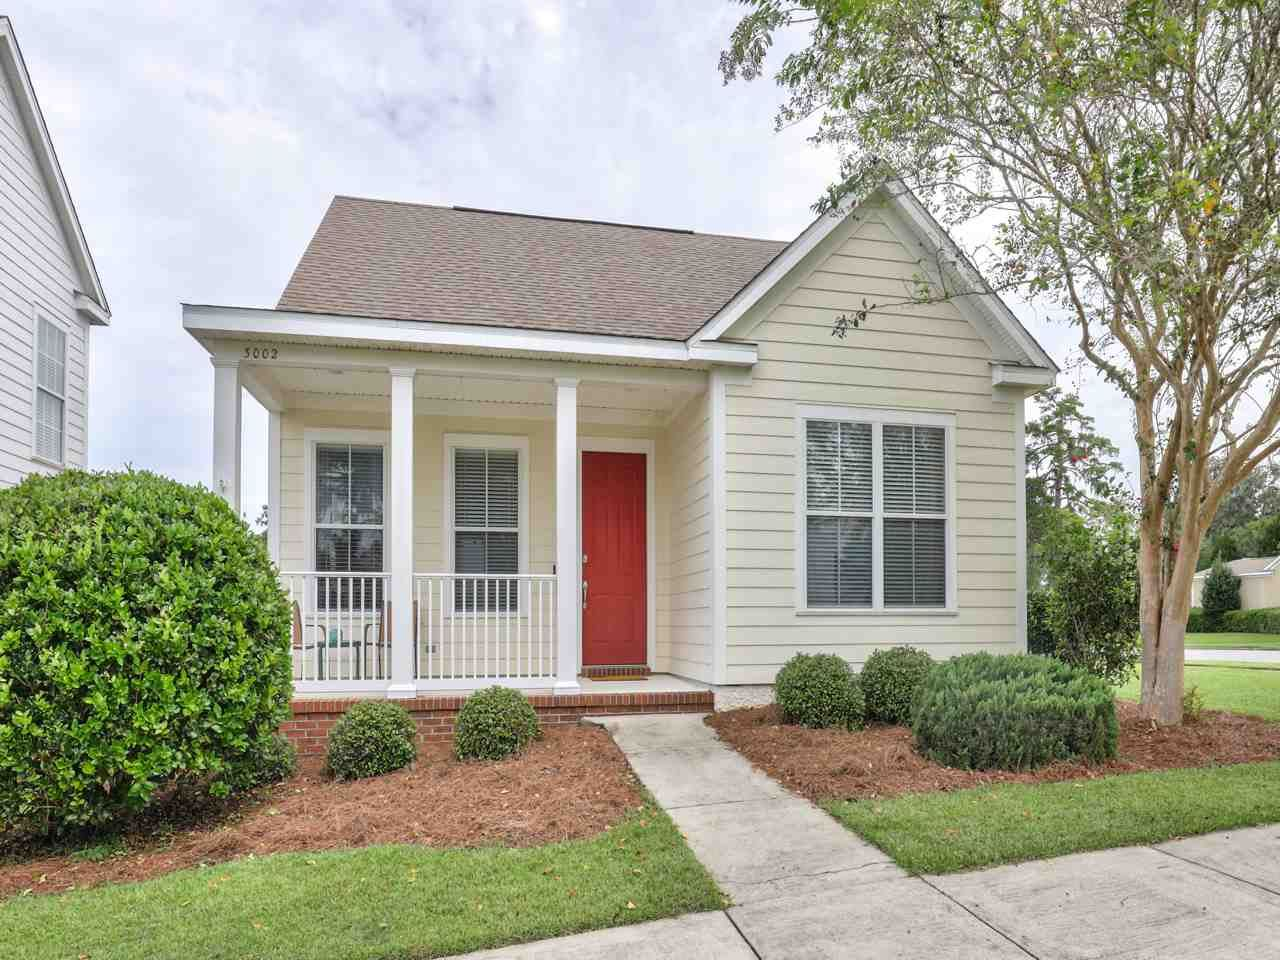 3002 Cummings Avenue, Tallahassee, FL 32311 - MLS#: 323647